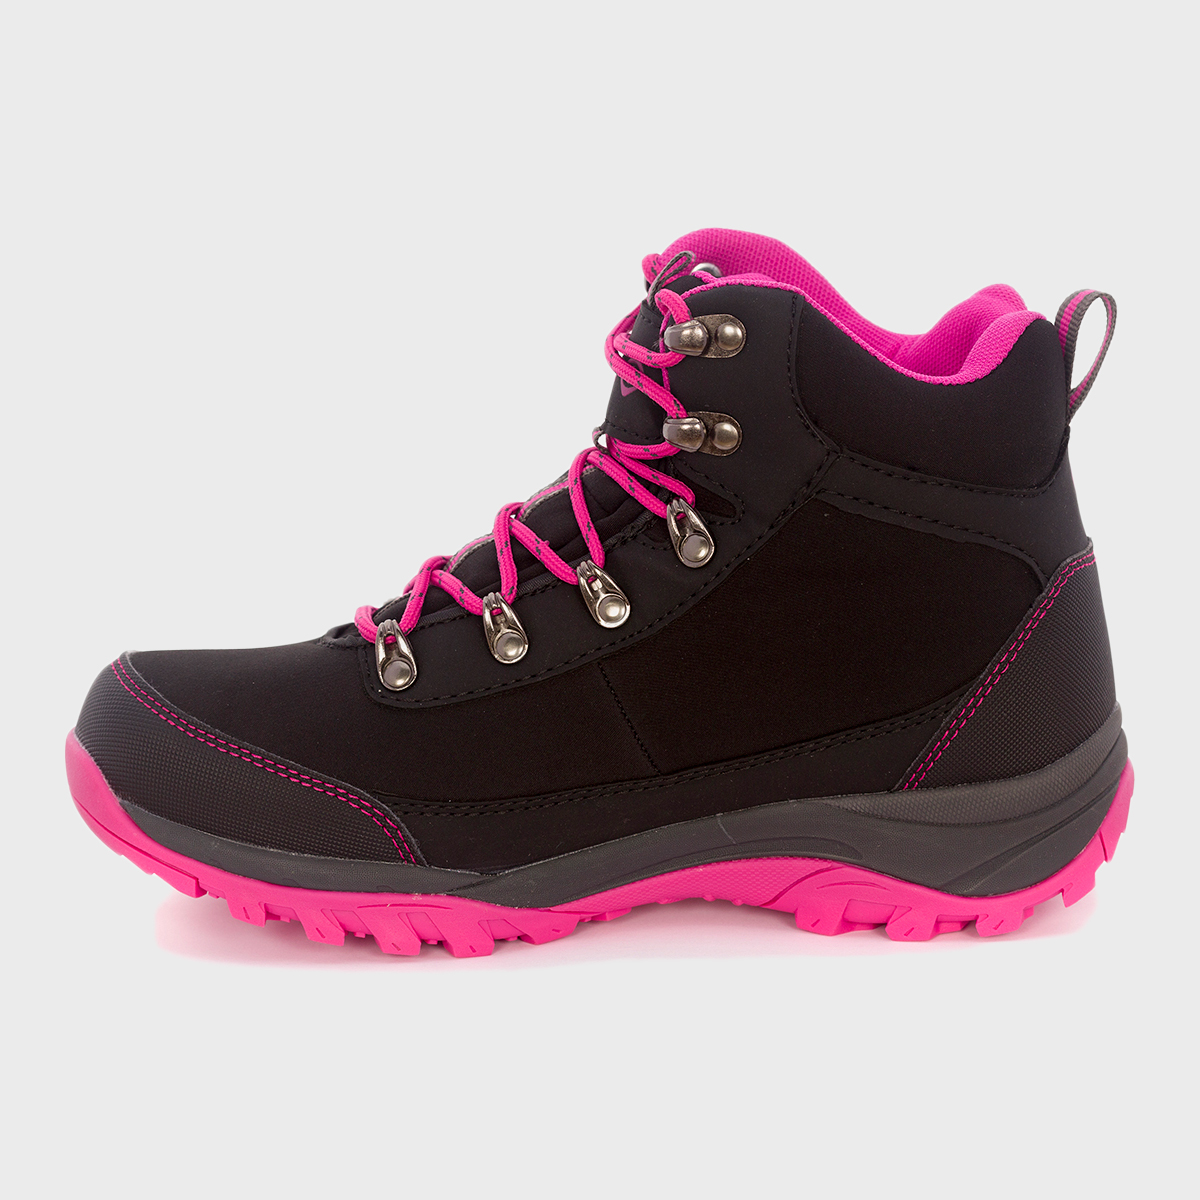 WOMAN'S LEZAT HIKING BOOTS BLACK